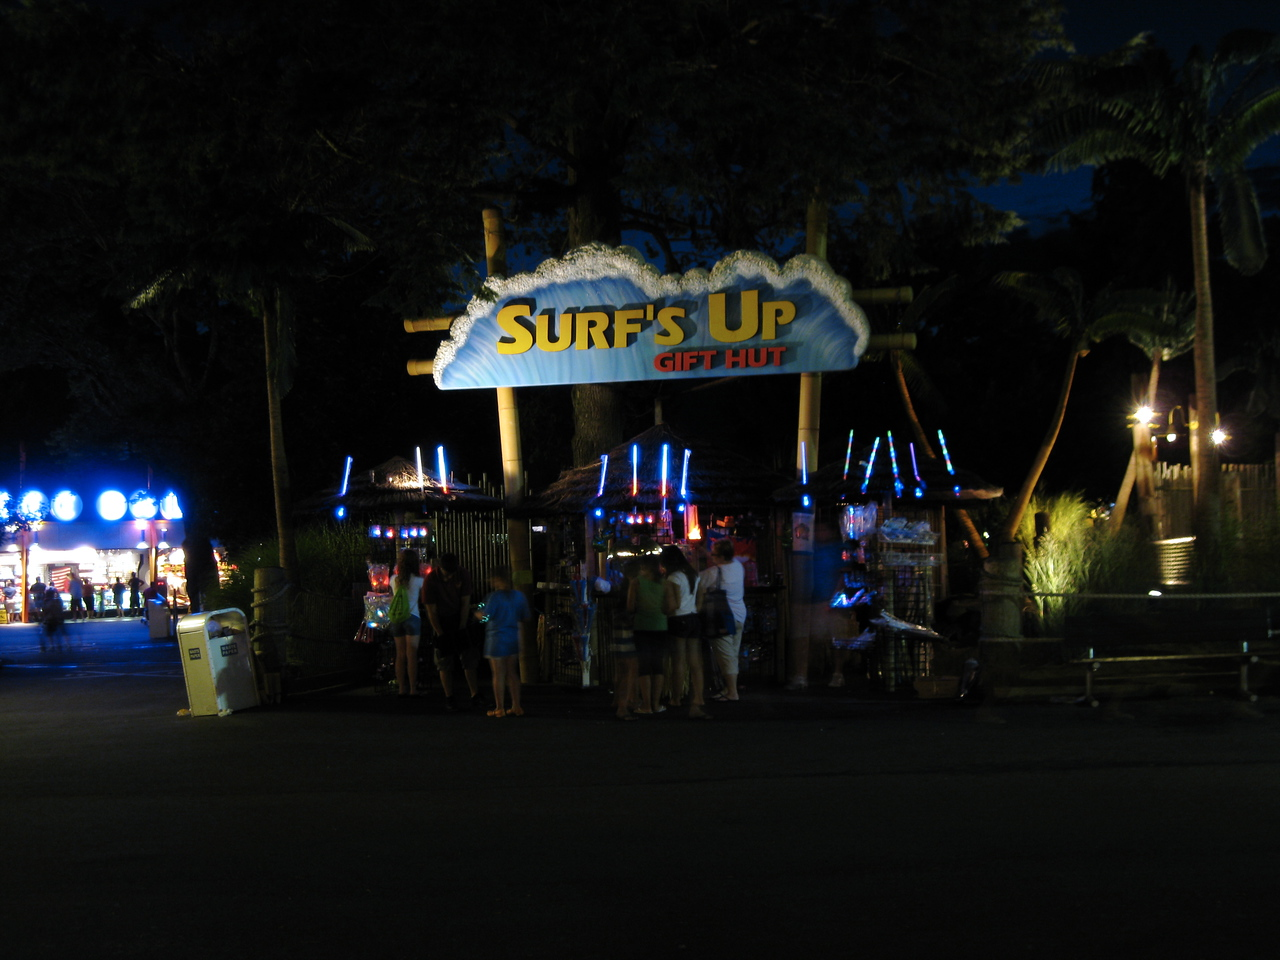 Surf's Up gift stand at night.